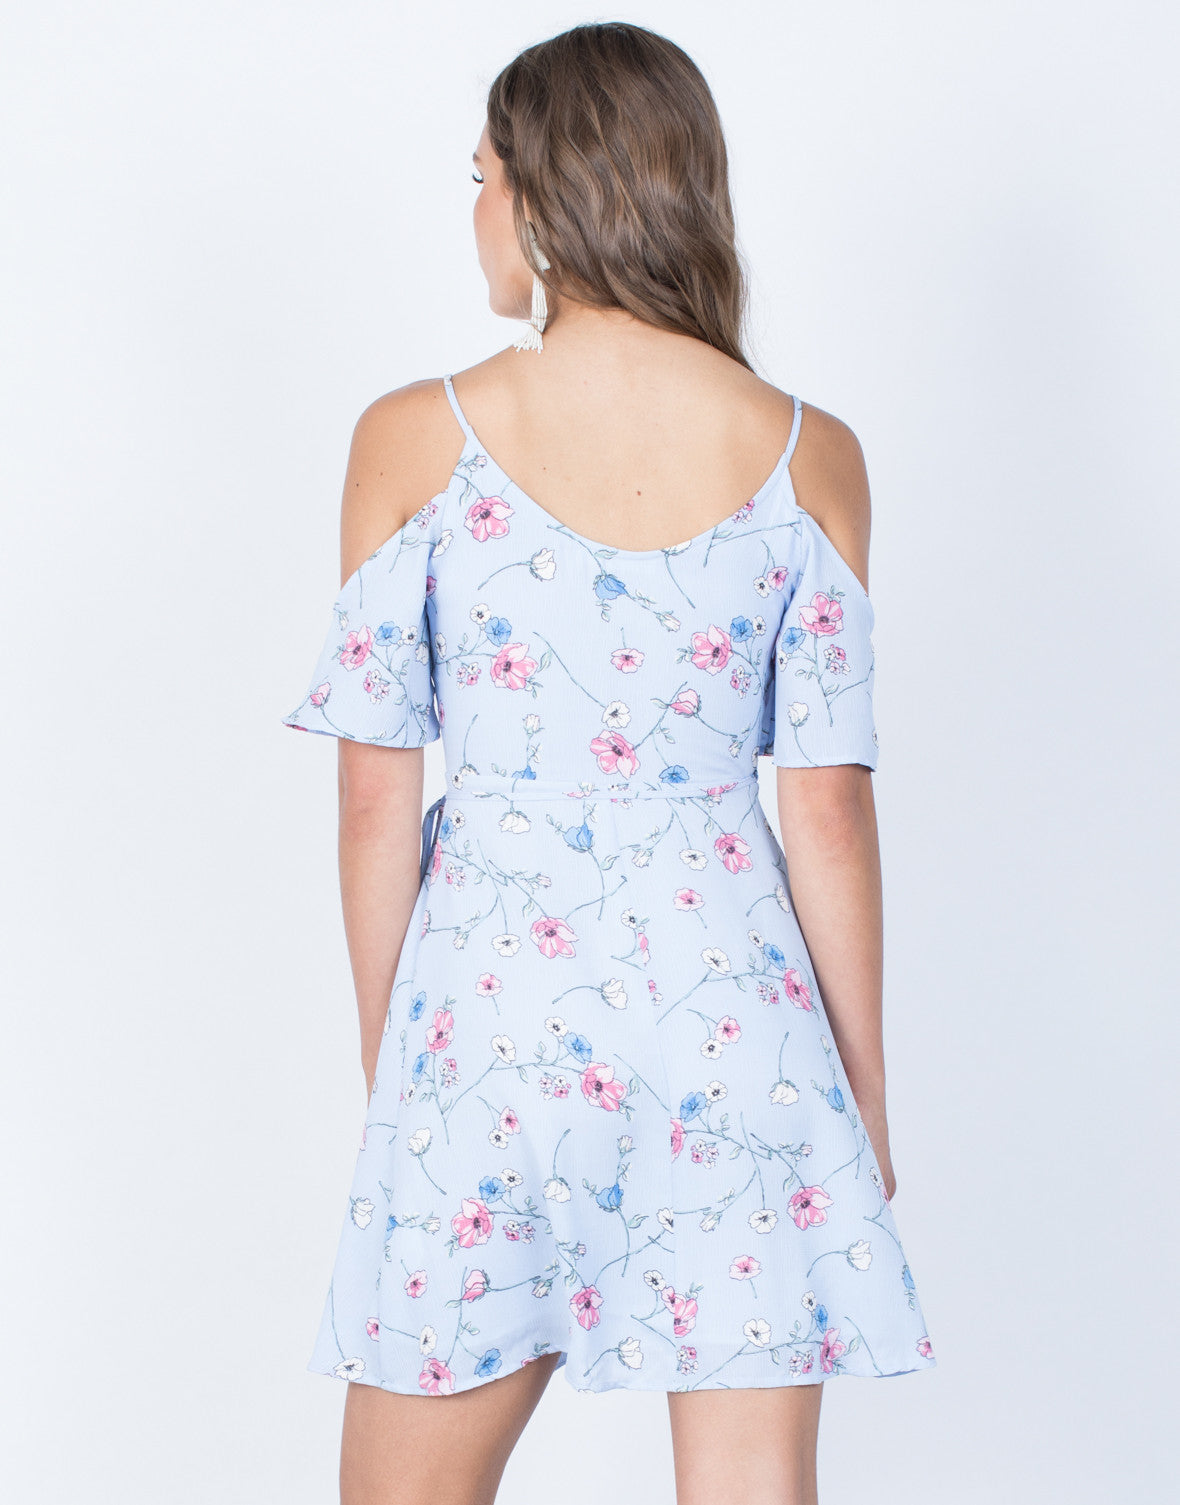 Back View of Sketched in Floral Dress